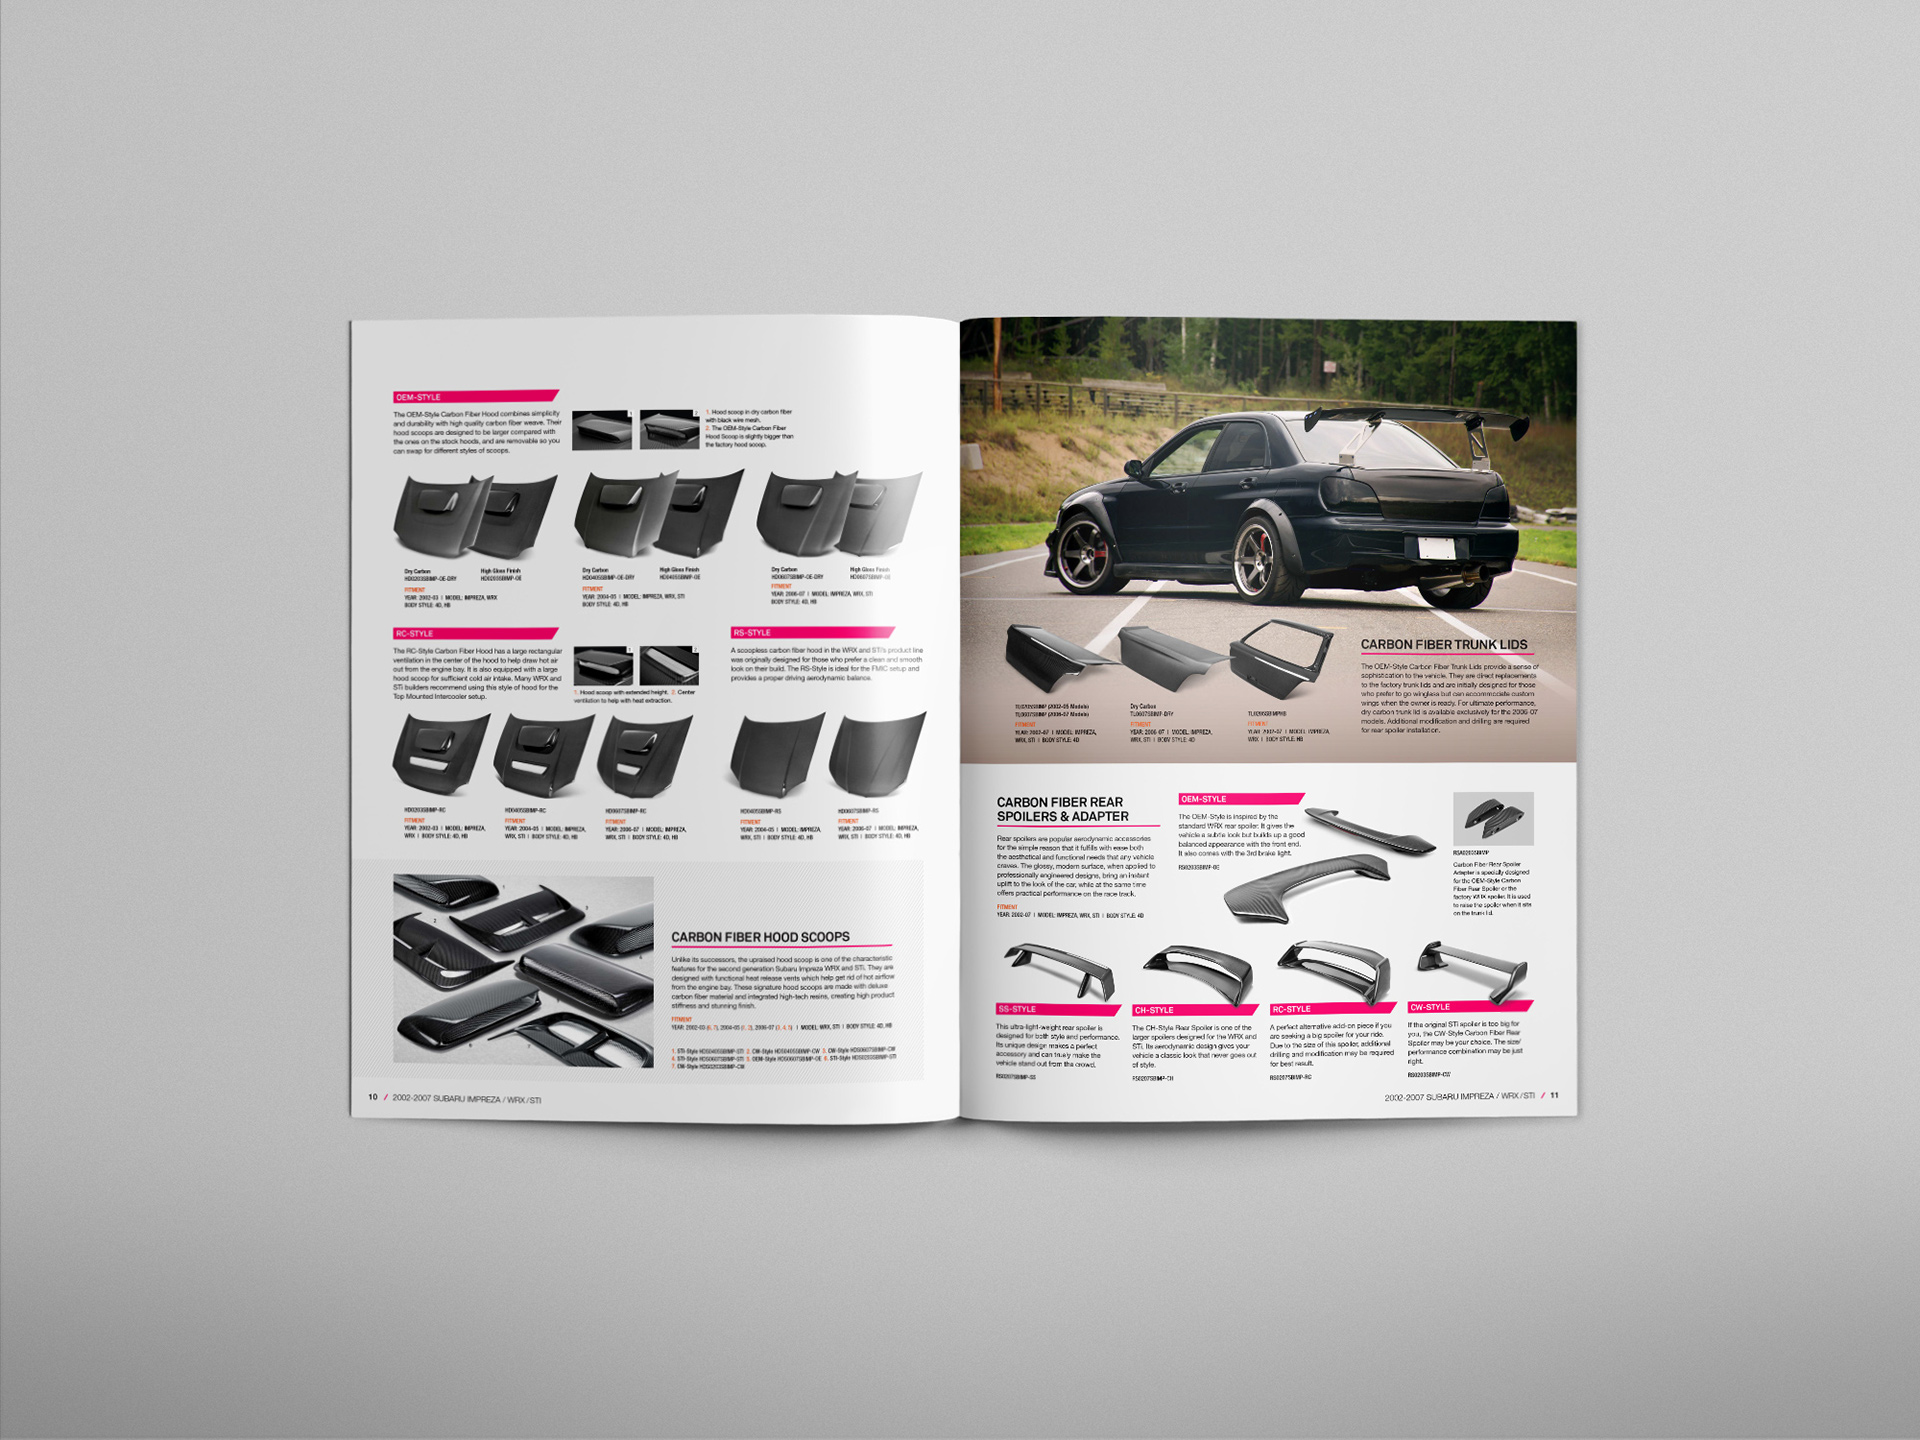 Subaru Impreza WRX/STI Product Catalog on Behance